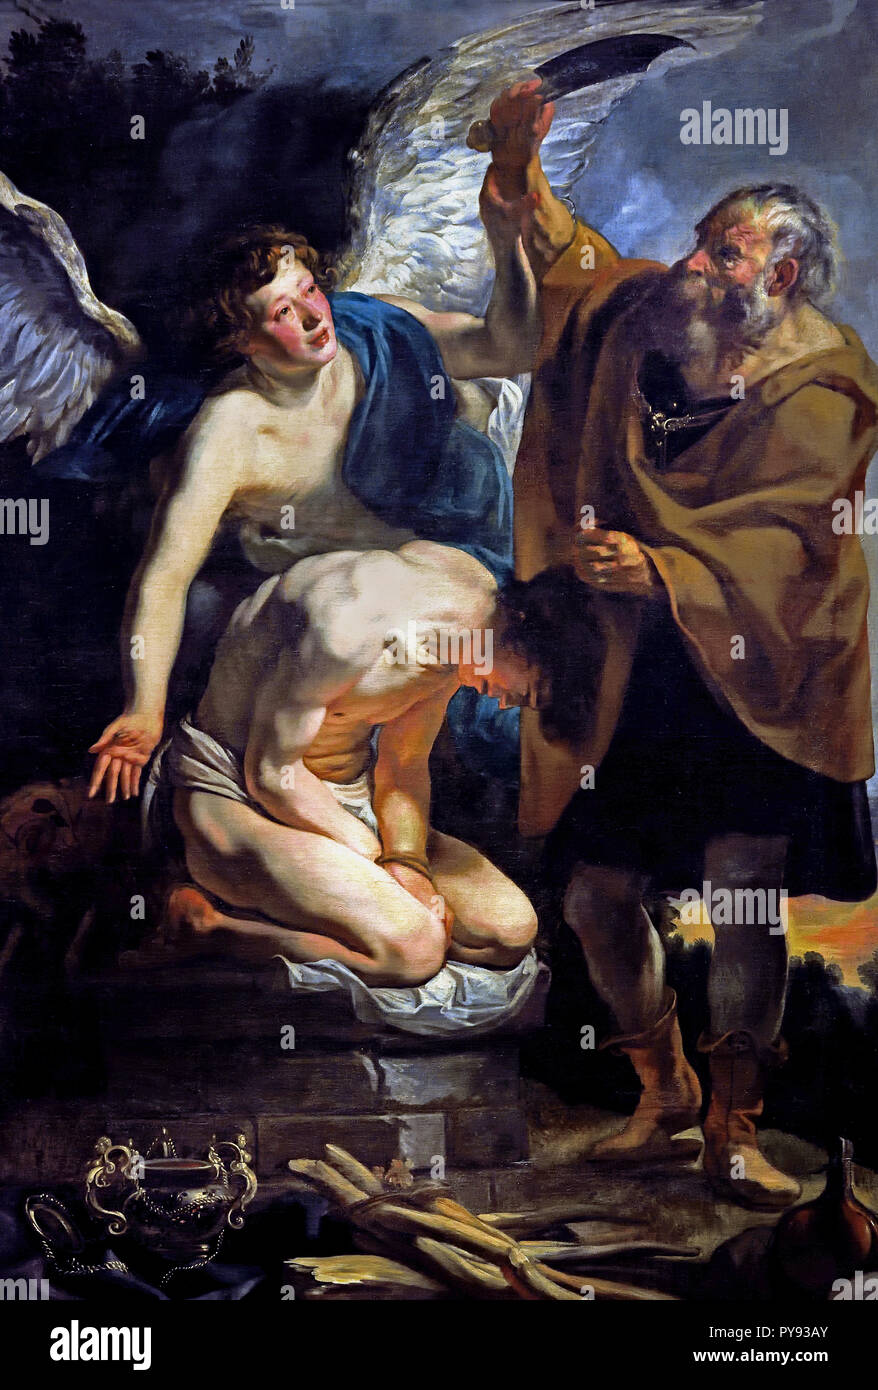 The Sacrifice of Isaac 1625 - 1626  by Jacob JORDAENS 1593 - 1678 Belgium Begian ( God asks Abraham to sacrifice his son, Isaac, on Moriah. Abraham begins to comply, when a messenger from God interrupts him. Abraham then sees a ram and sacrifices it instead. ) Stock Photo